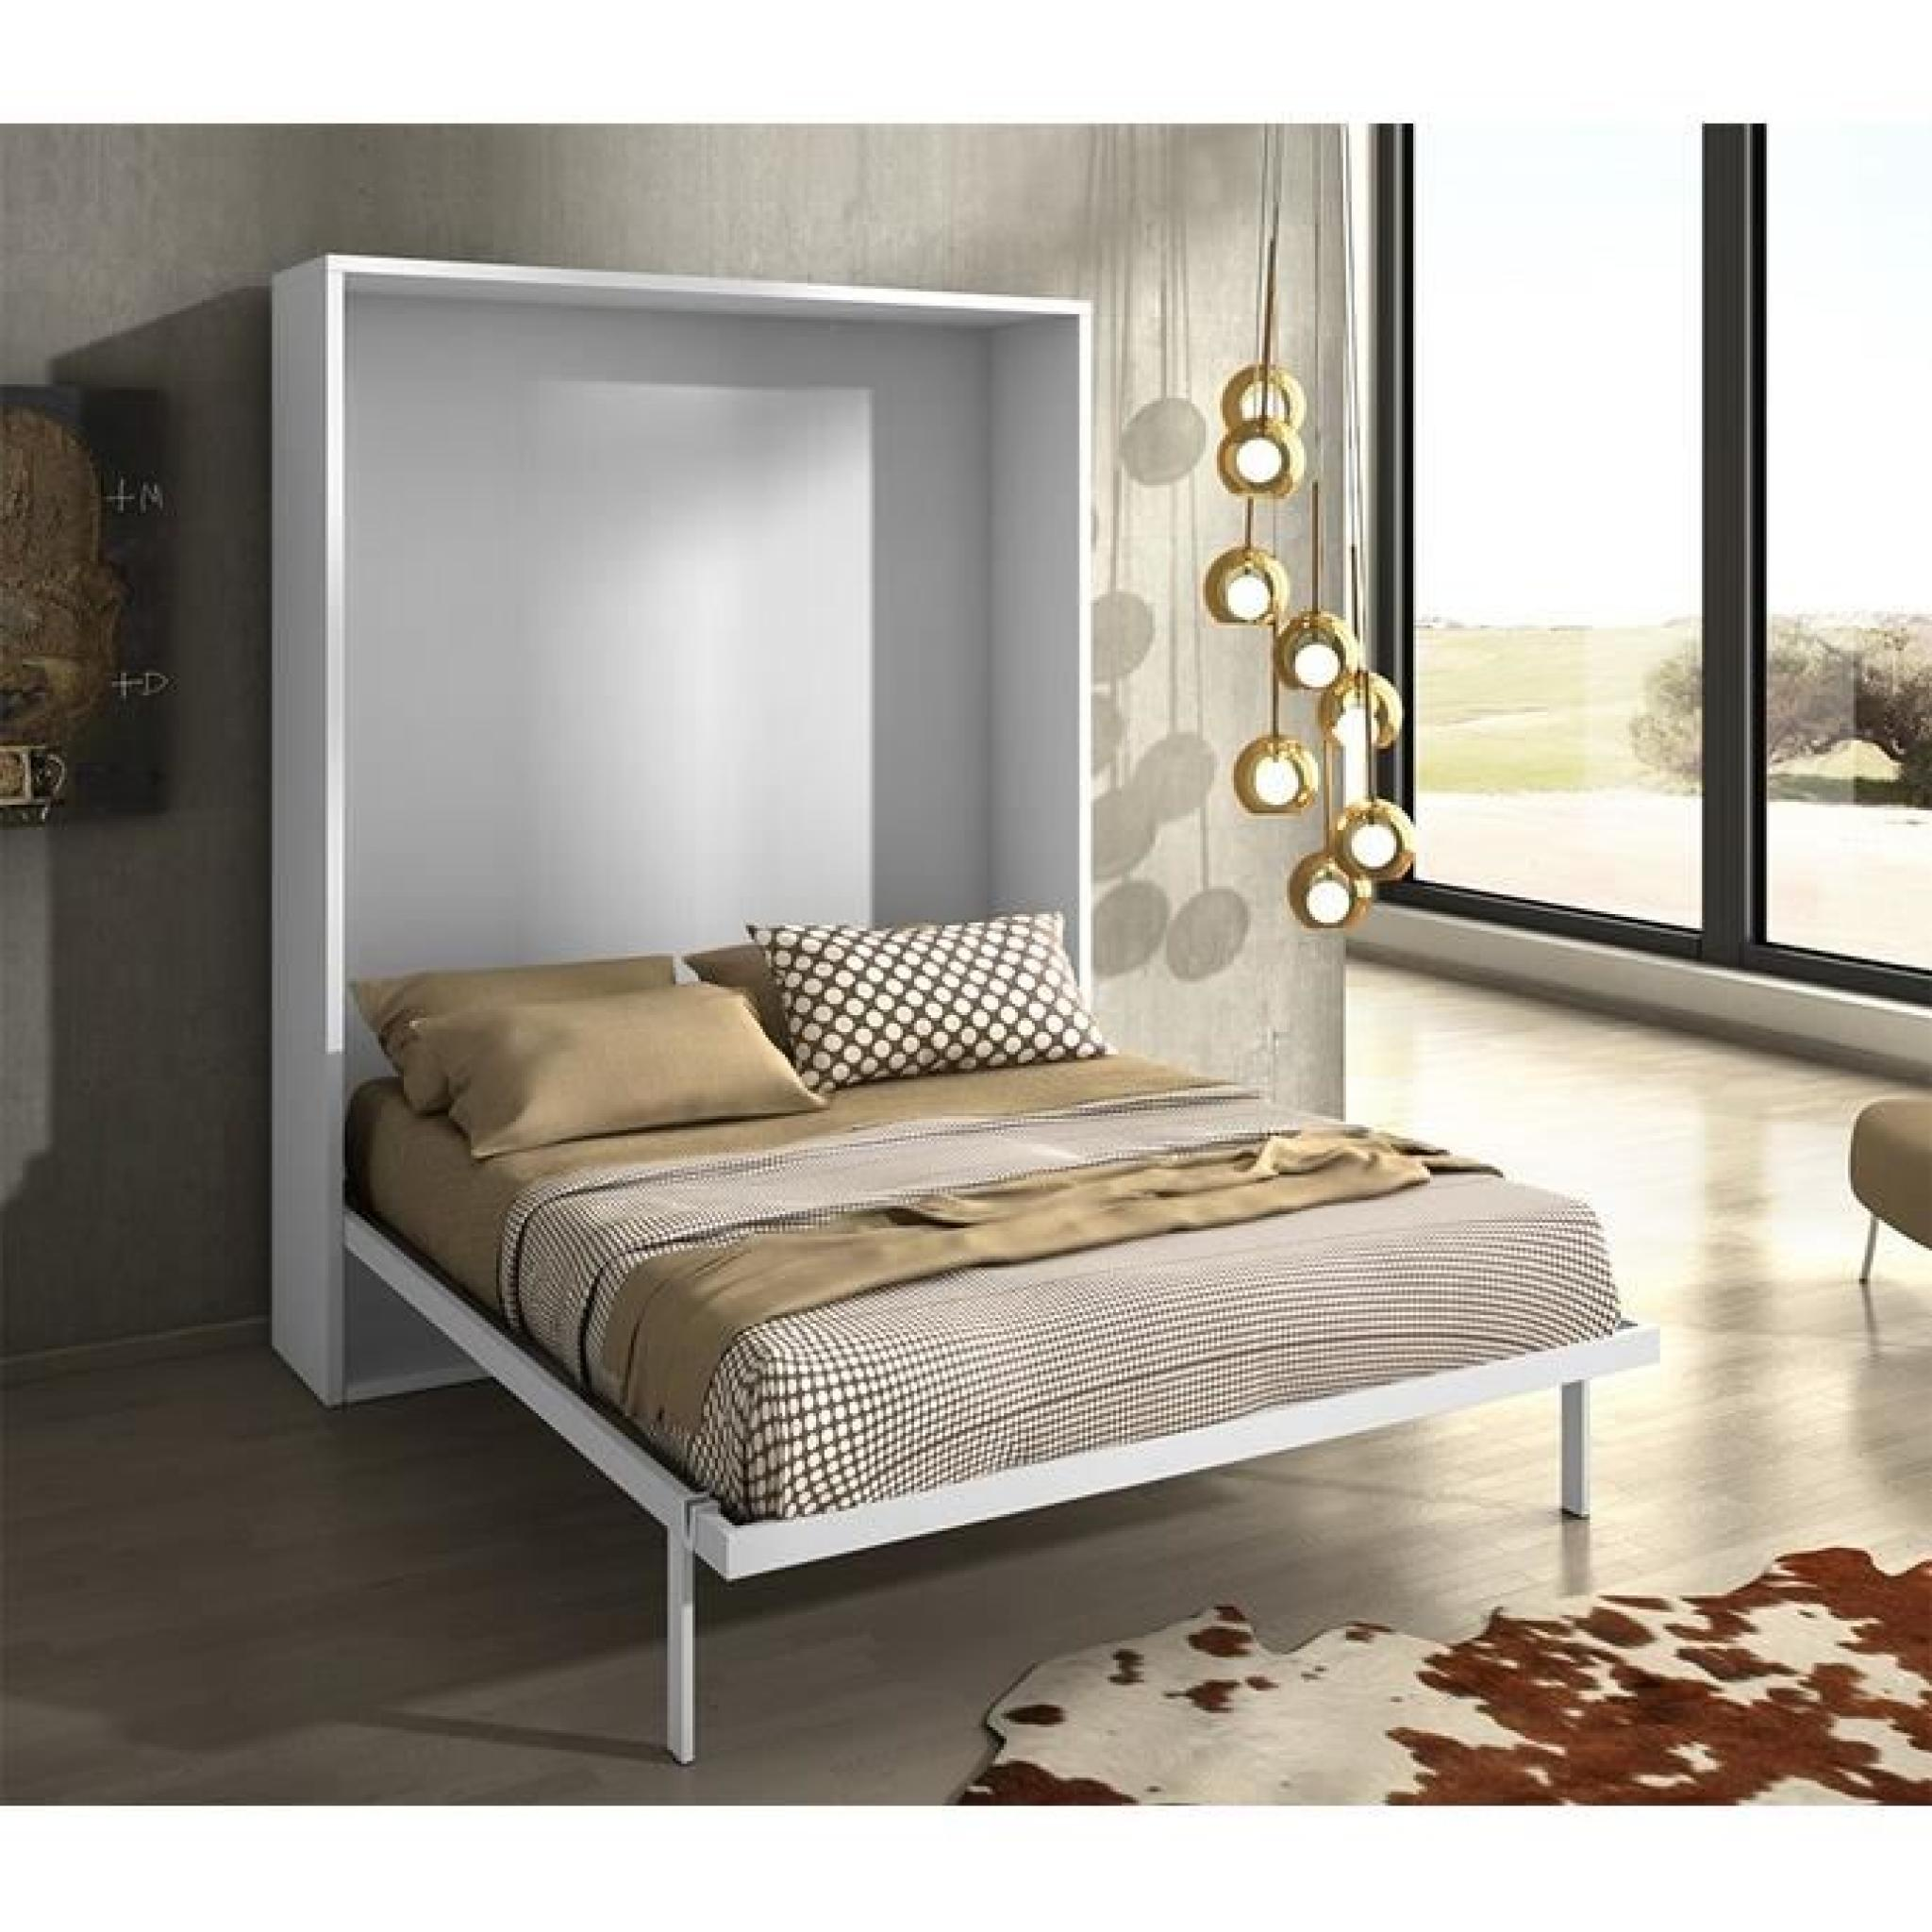 armoire lit escamotable joy ch ne blanc 140x200 achat. Black Bedroom Furniture Sets. Home Design Ideas